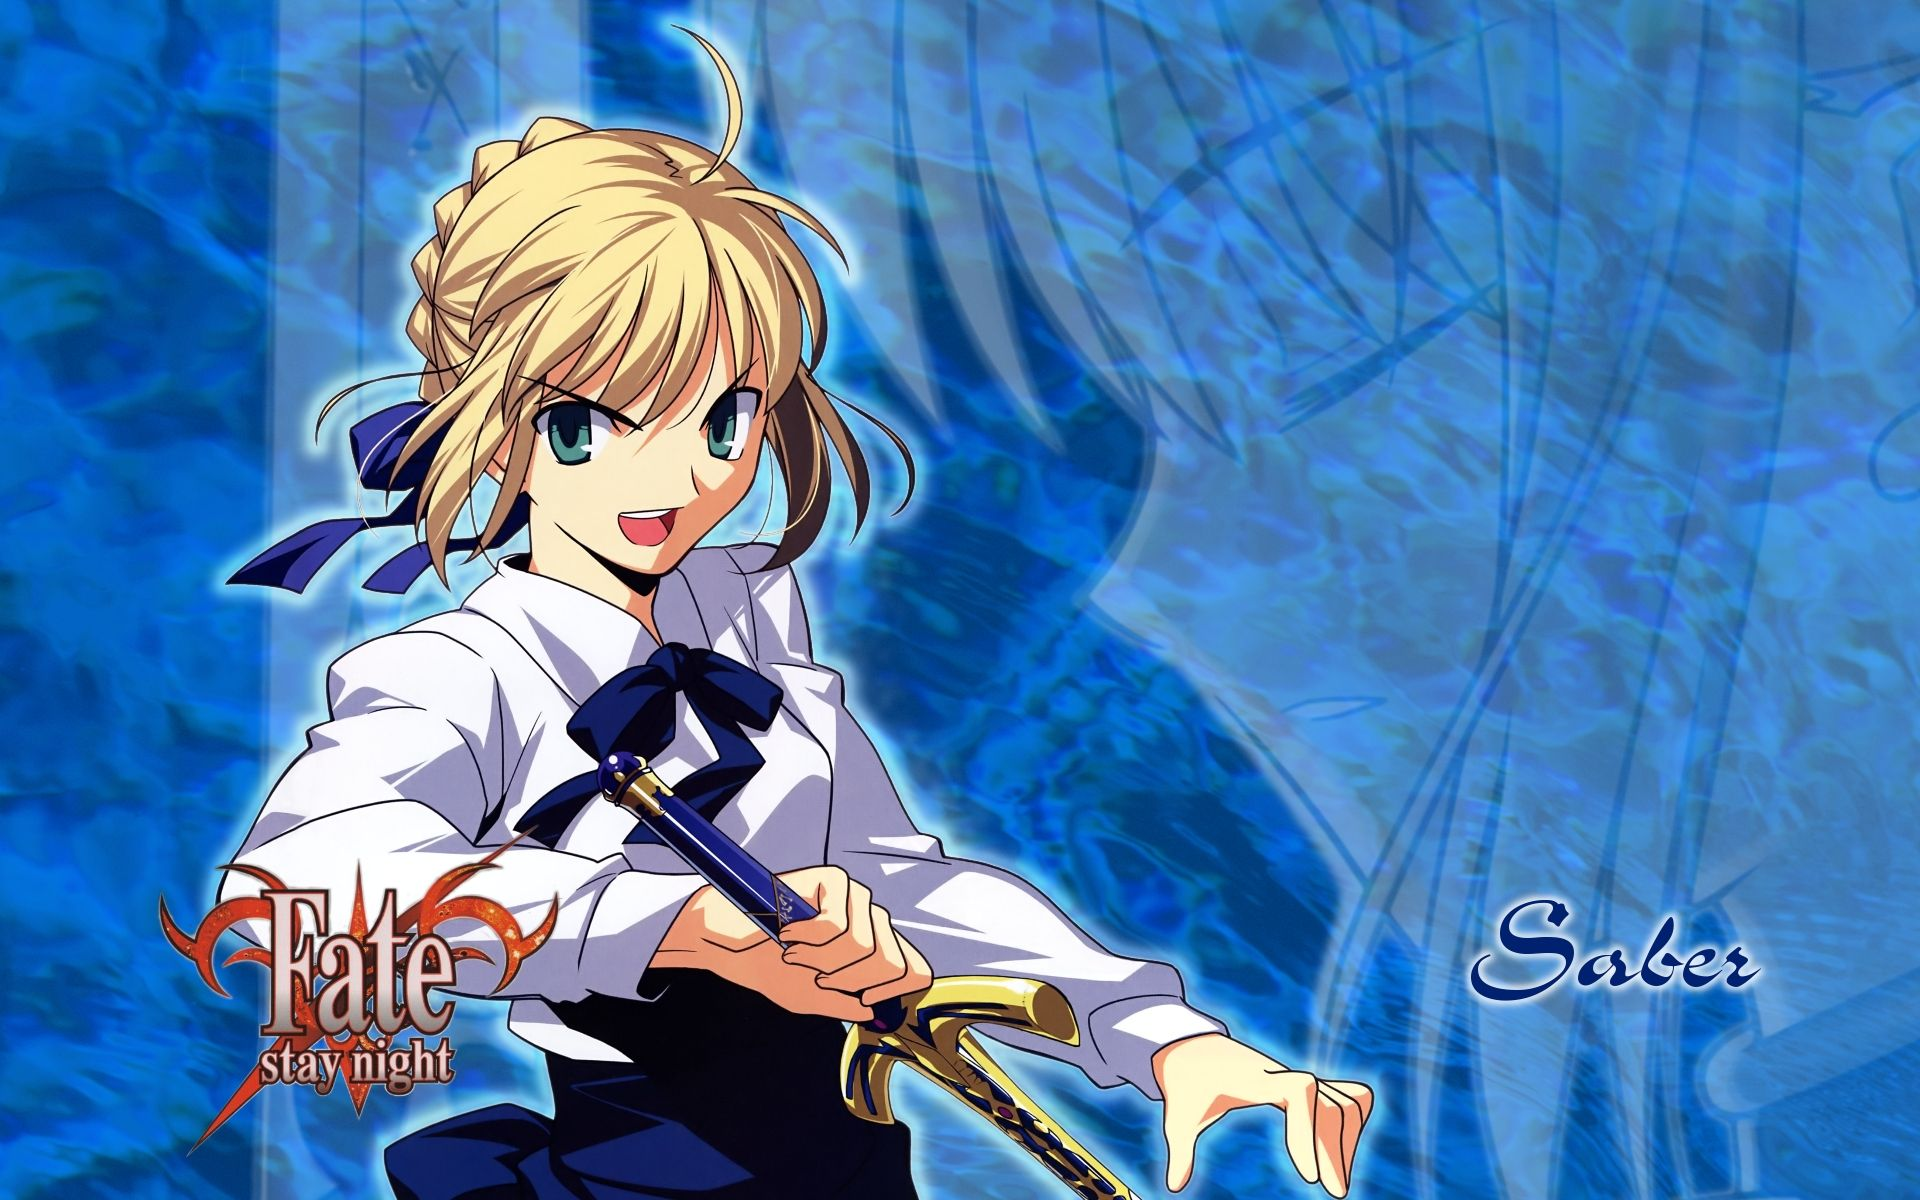 Fate_unlimited_codes-98.jpg